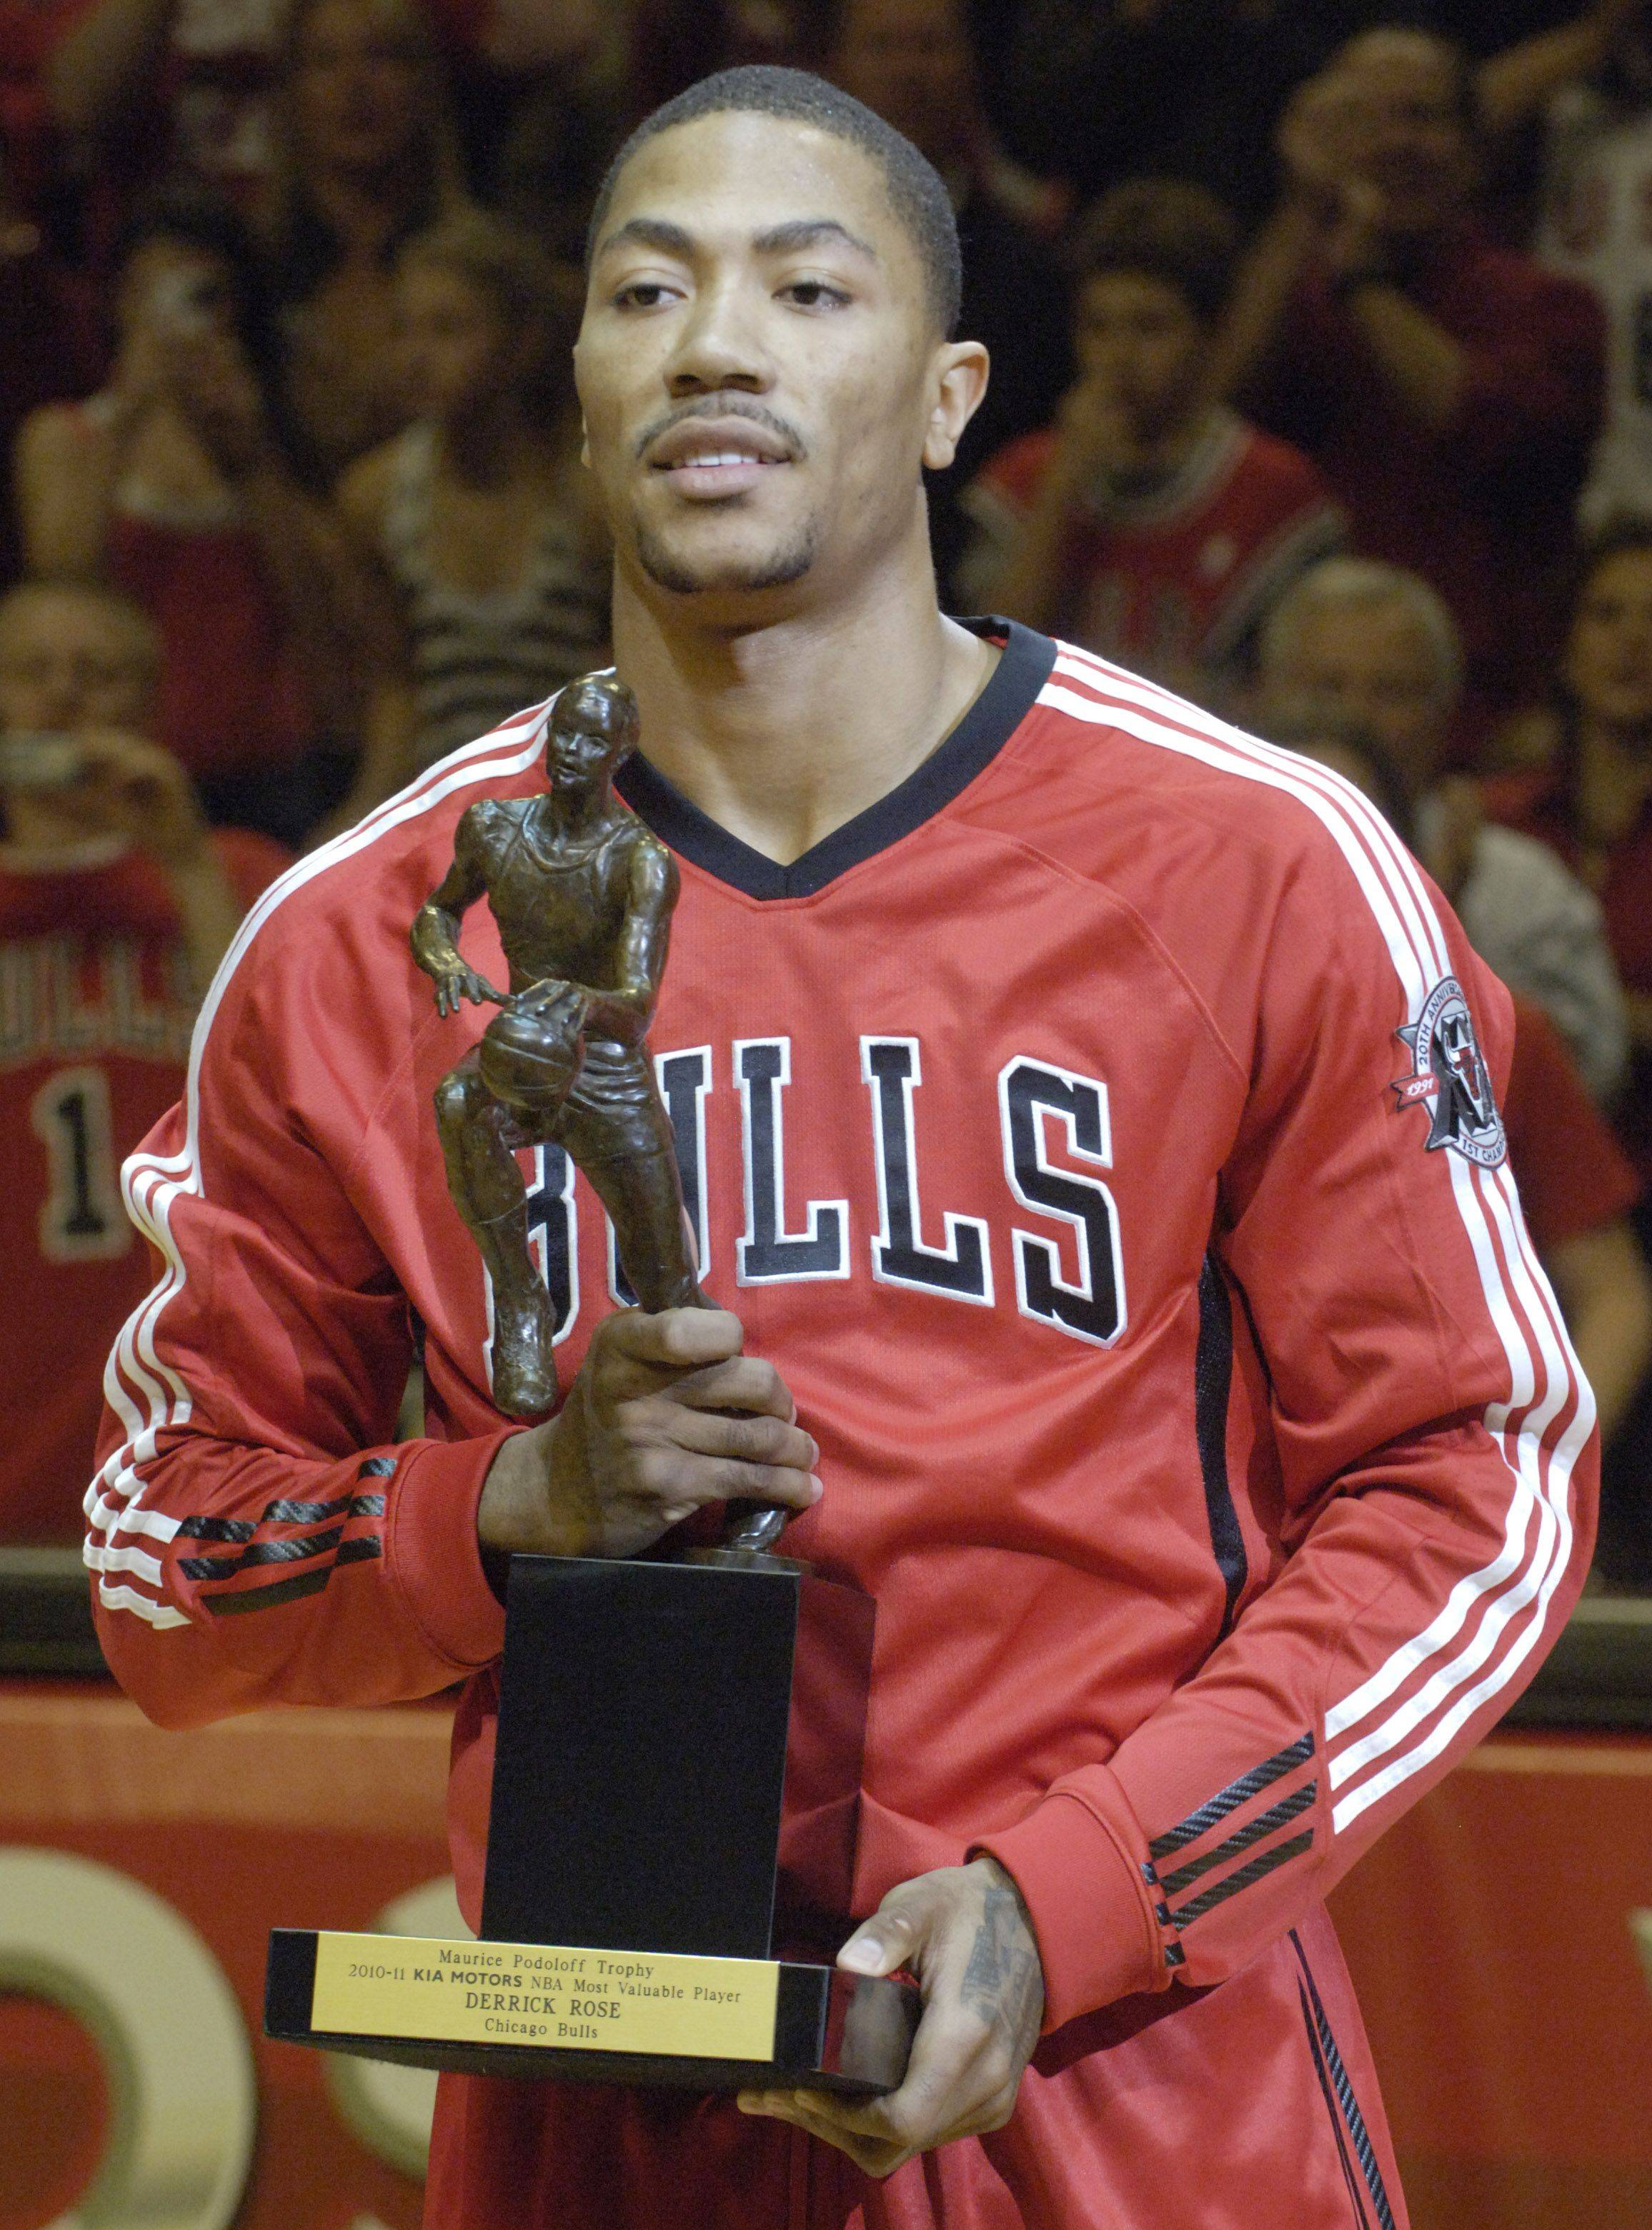 Derrick Rose of the Bulls holds the MVP trophy prior to Wednesday's game.